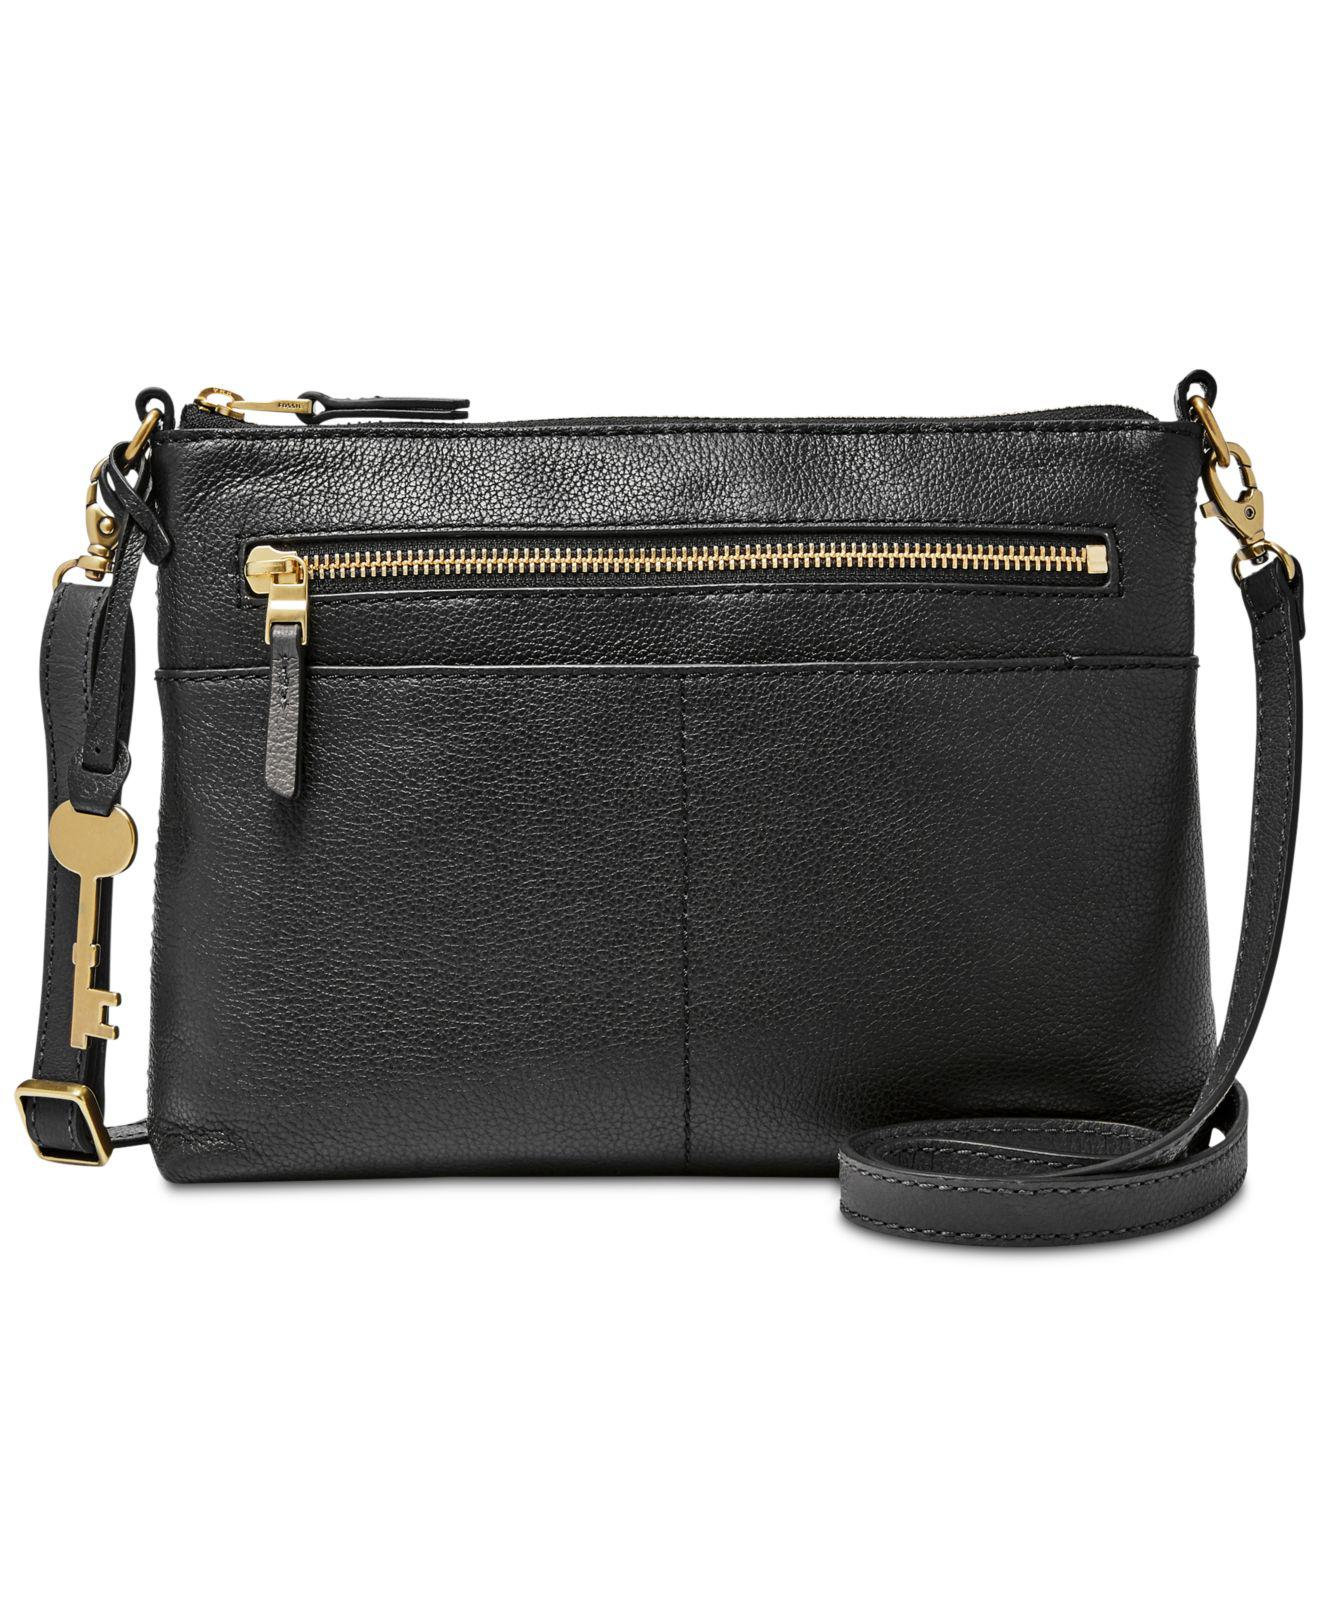 bf1b4f1aa5df Lyst - Fossil Fiona Small Leather Crossbody in Black - Save 9%